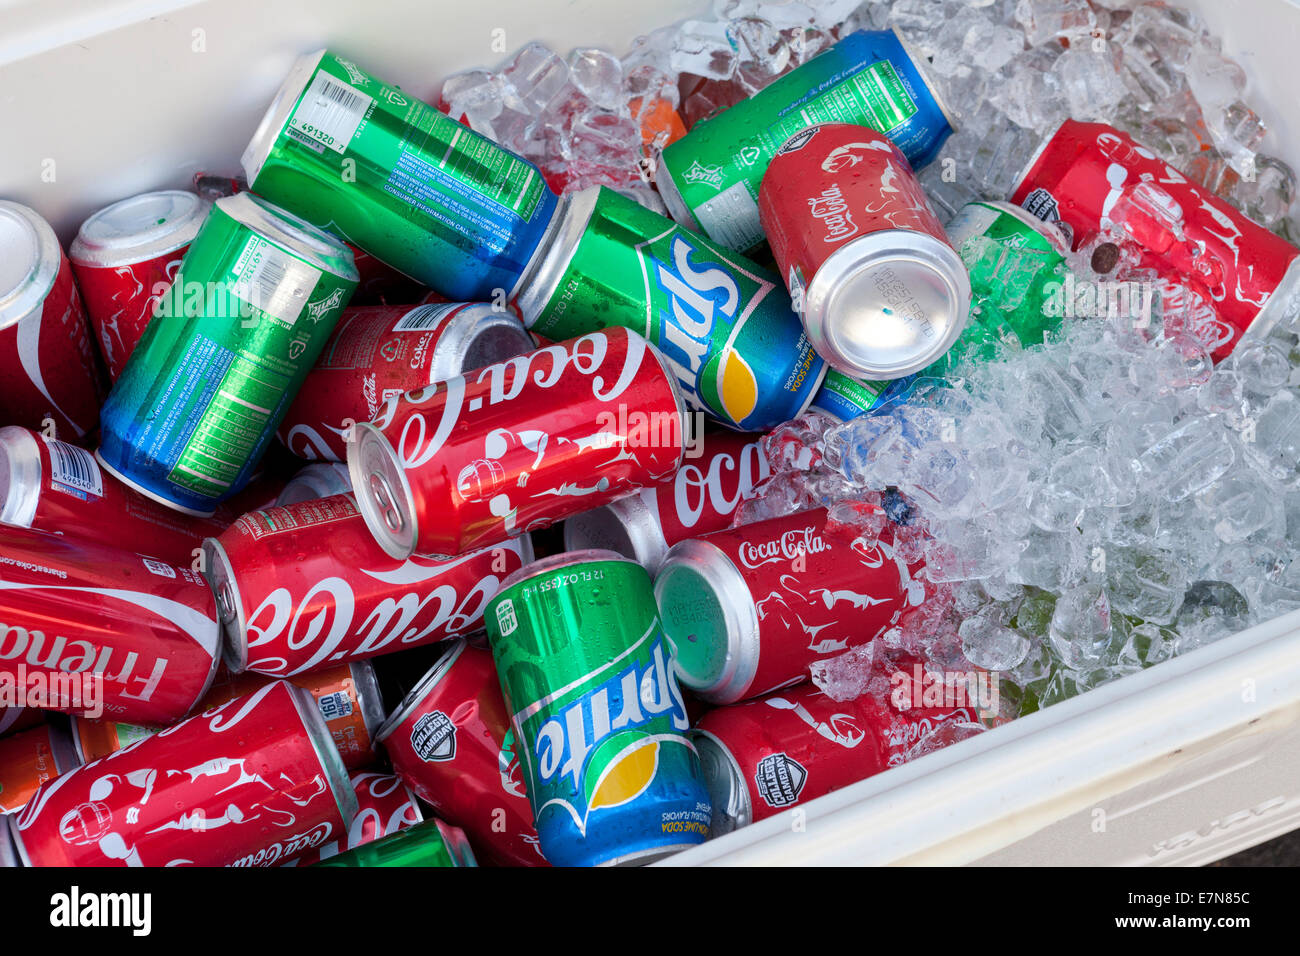 Coca-Cola and Sprite sodas in cooler - USA - Stock Image